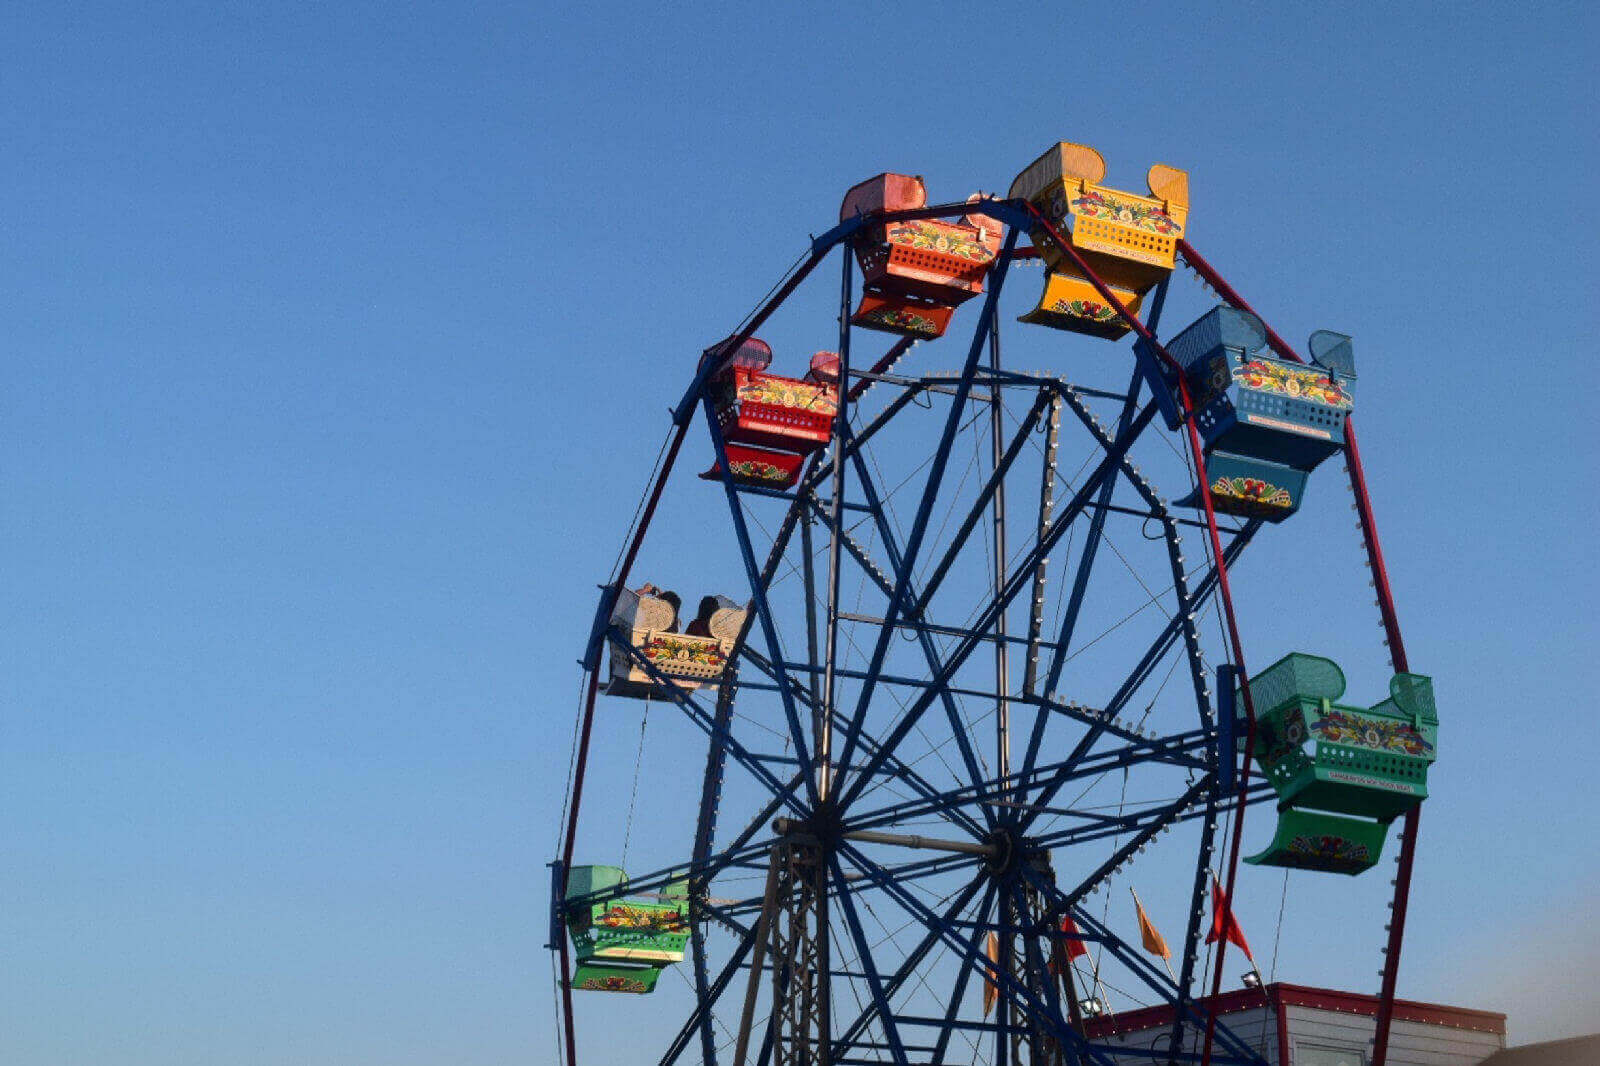 Traditional Funfair Ferris Wheel